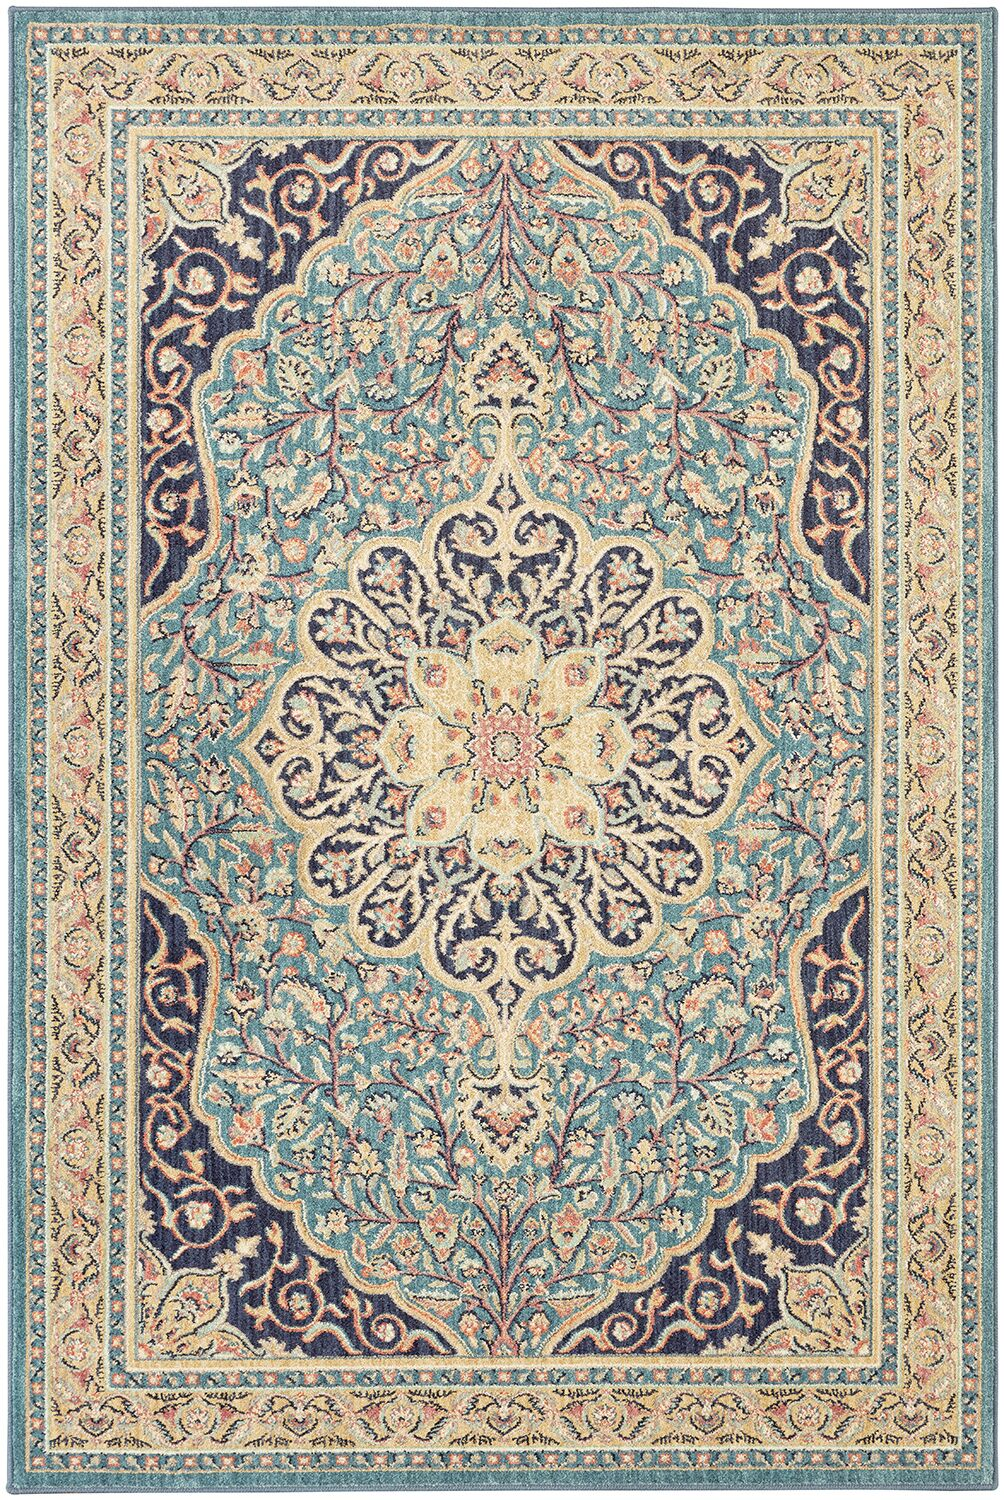 Lakemont Machine Woven Wool Blue Area Rug Rug Size: Rectangle 8' x 10'